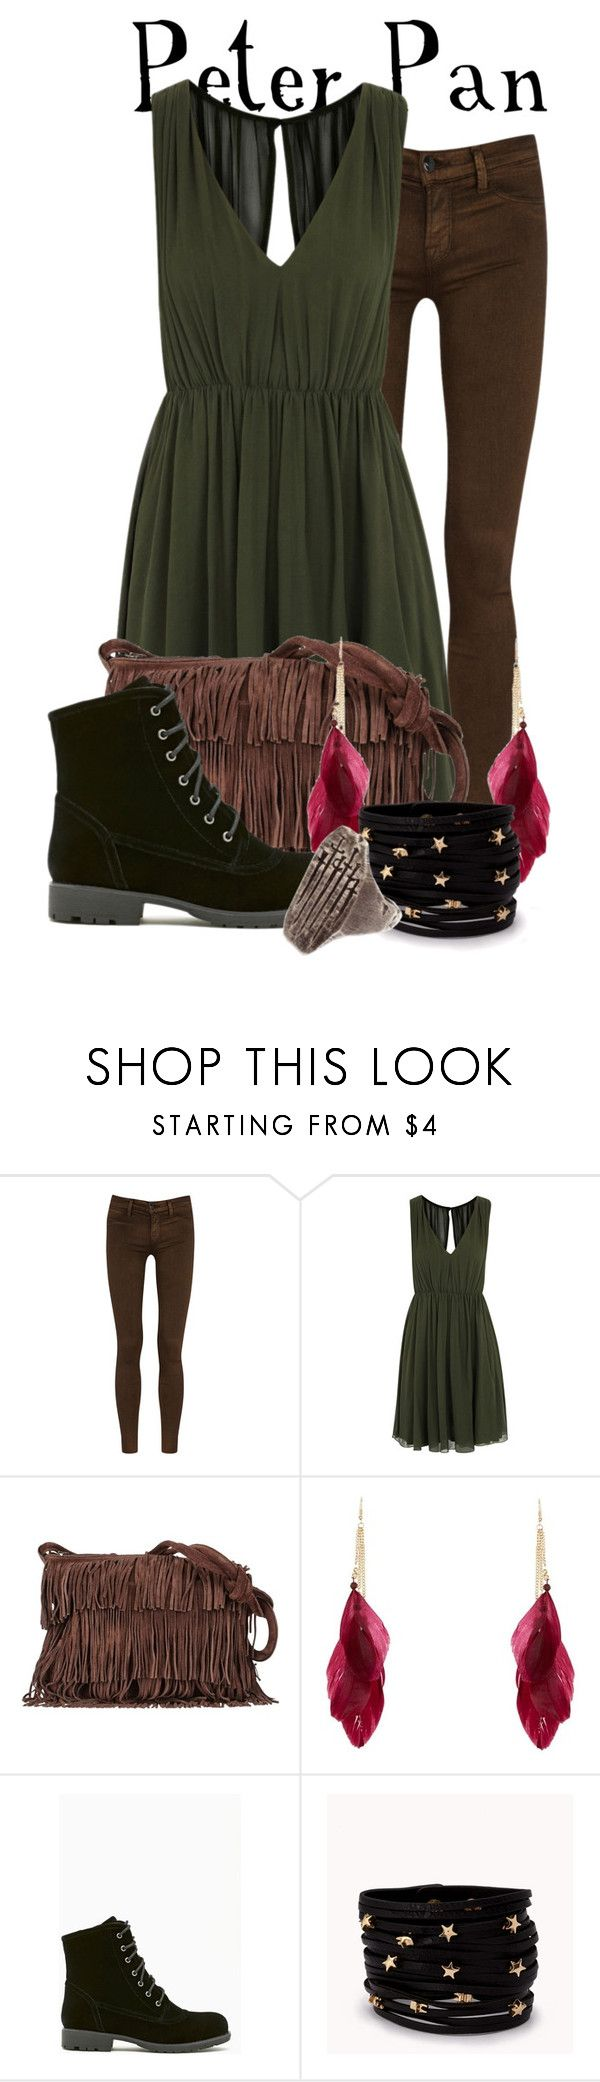 """""""Requested by Peter himself!"""" by totallytrue ❤ liked on Polyvore featuring J Brand, Alice + Olivia, Sequoia, Shoe Cult, Forever 21, disney, disneybound, neverland and ShowUsYourDisneySide"""